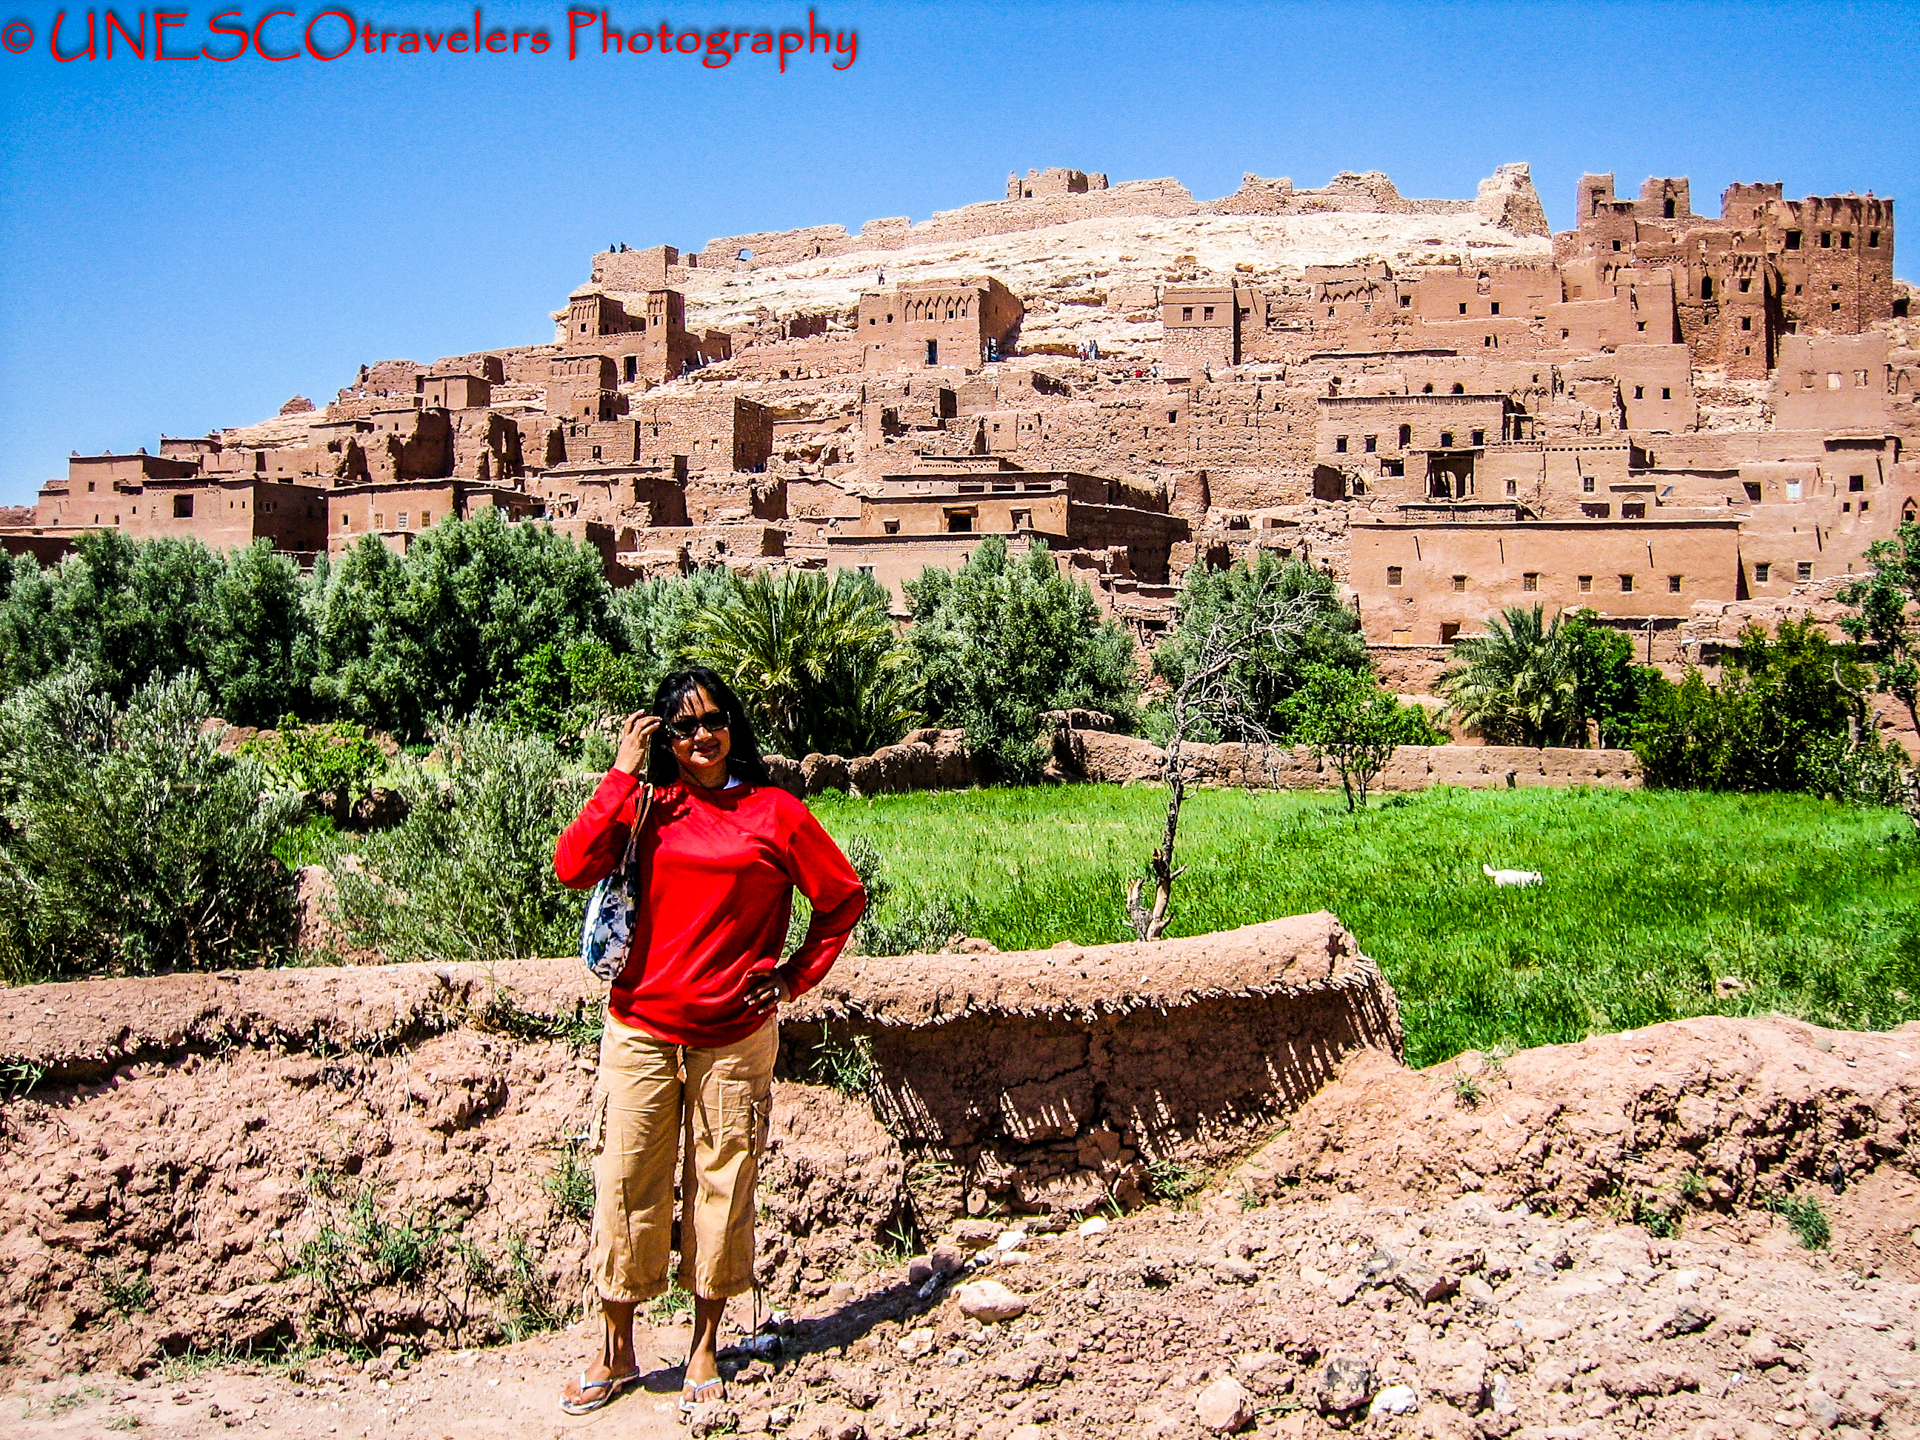 The Mud City of Morocco Ksar of Ait-Ben-Haddou - Morocco By UNESCOtravelers